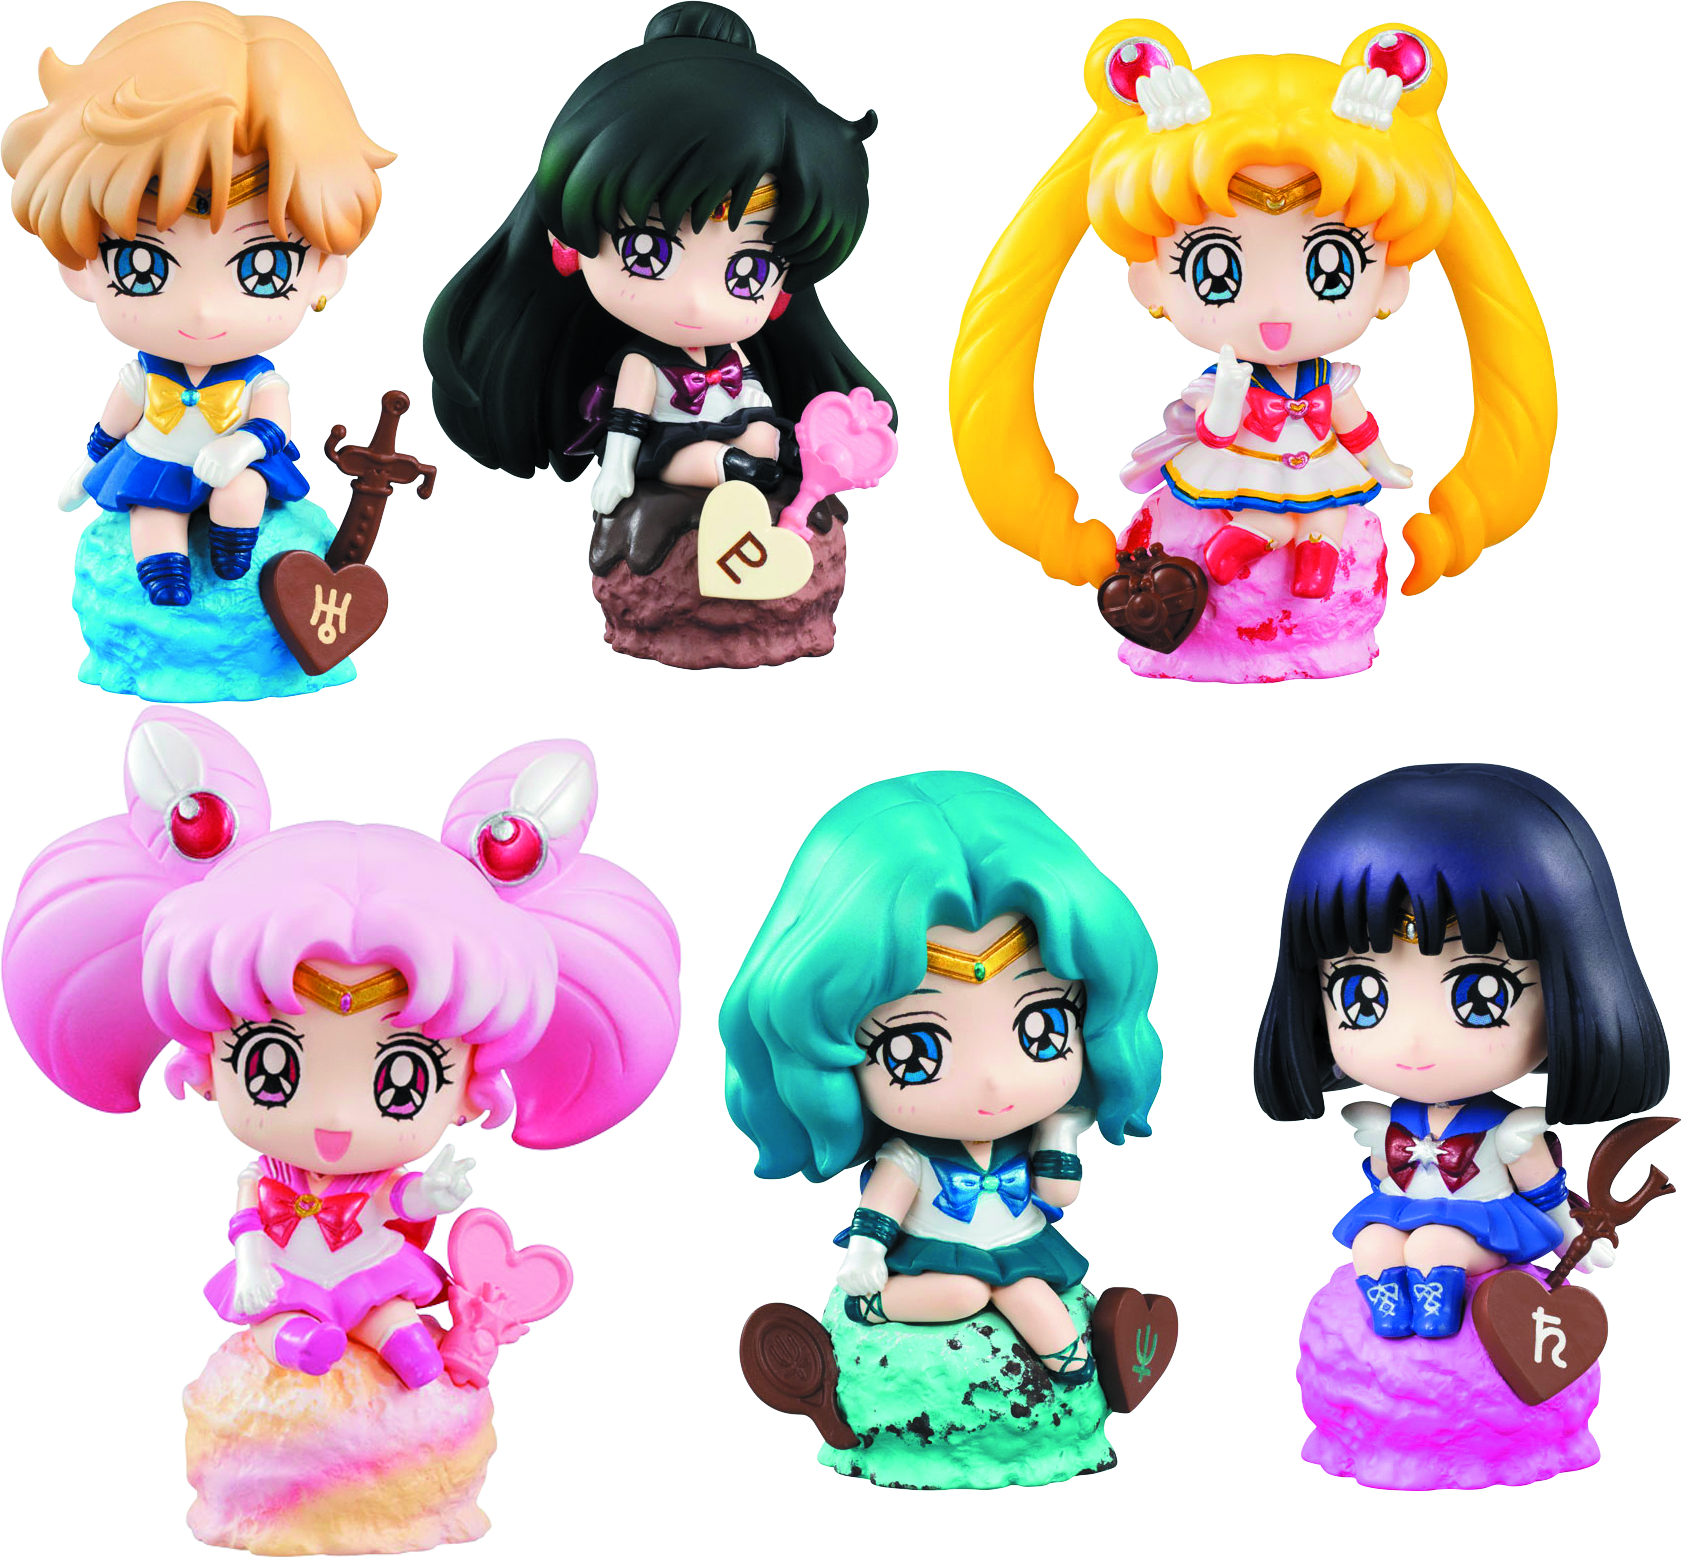 SAILOR MOON PETIT CHARA ICE CREAM PARTY VER SET